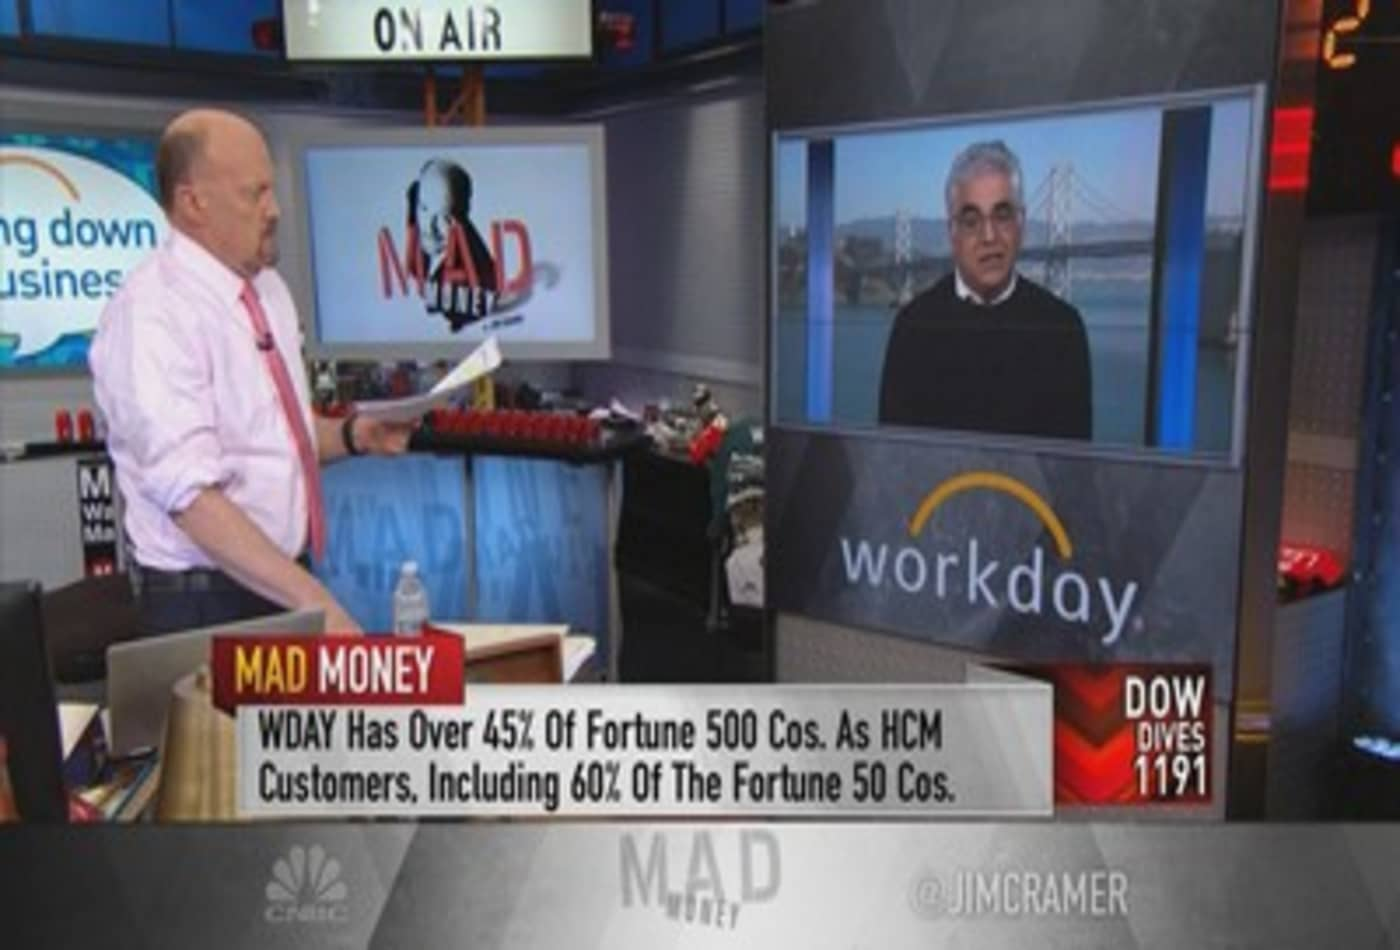 Workday CEO talks Q4 earnings, expects coronavirus concerns will ease by summer